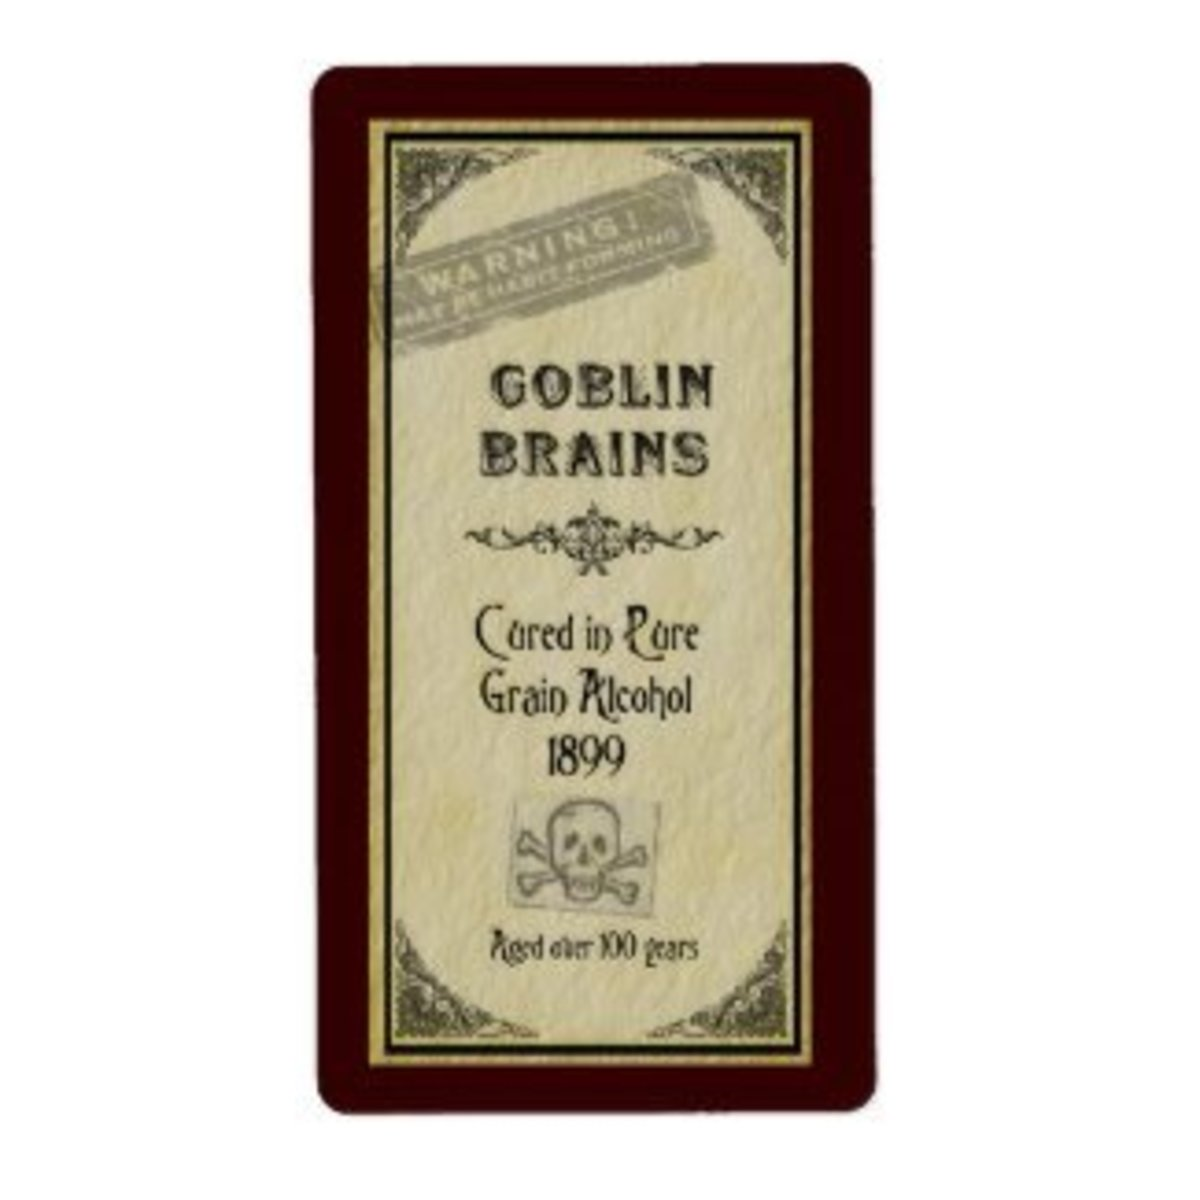 Goblin Brains Label Cured in Pure Grain Alcohol